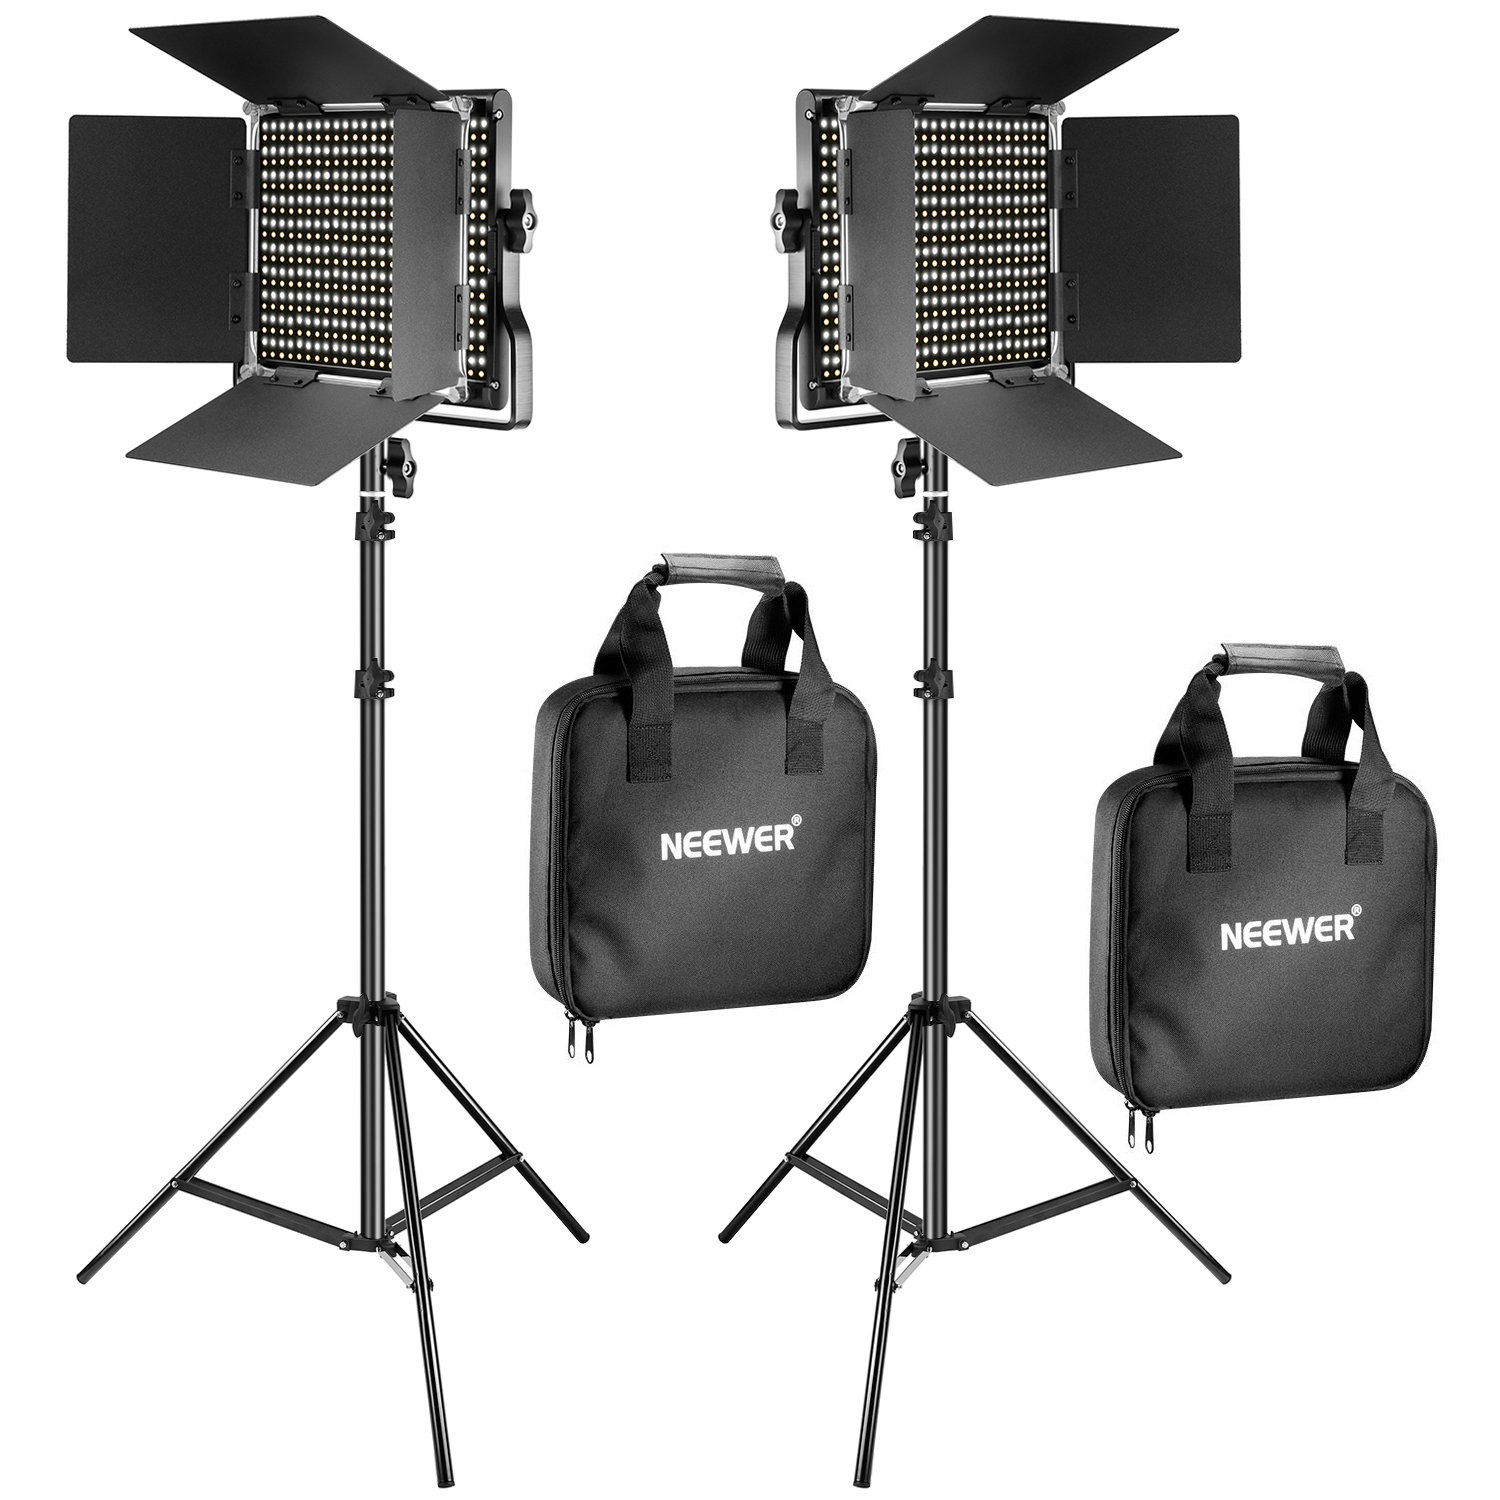 Amazon.com : Neewer 2 Pieces Bi-color 660 LED Video Light and Stand Kit Affordably priced, we use this light kit for fill light when doing more studio style video production.